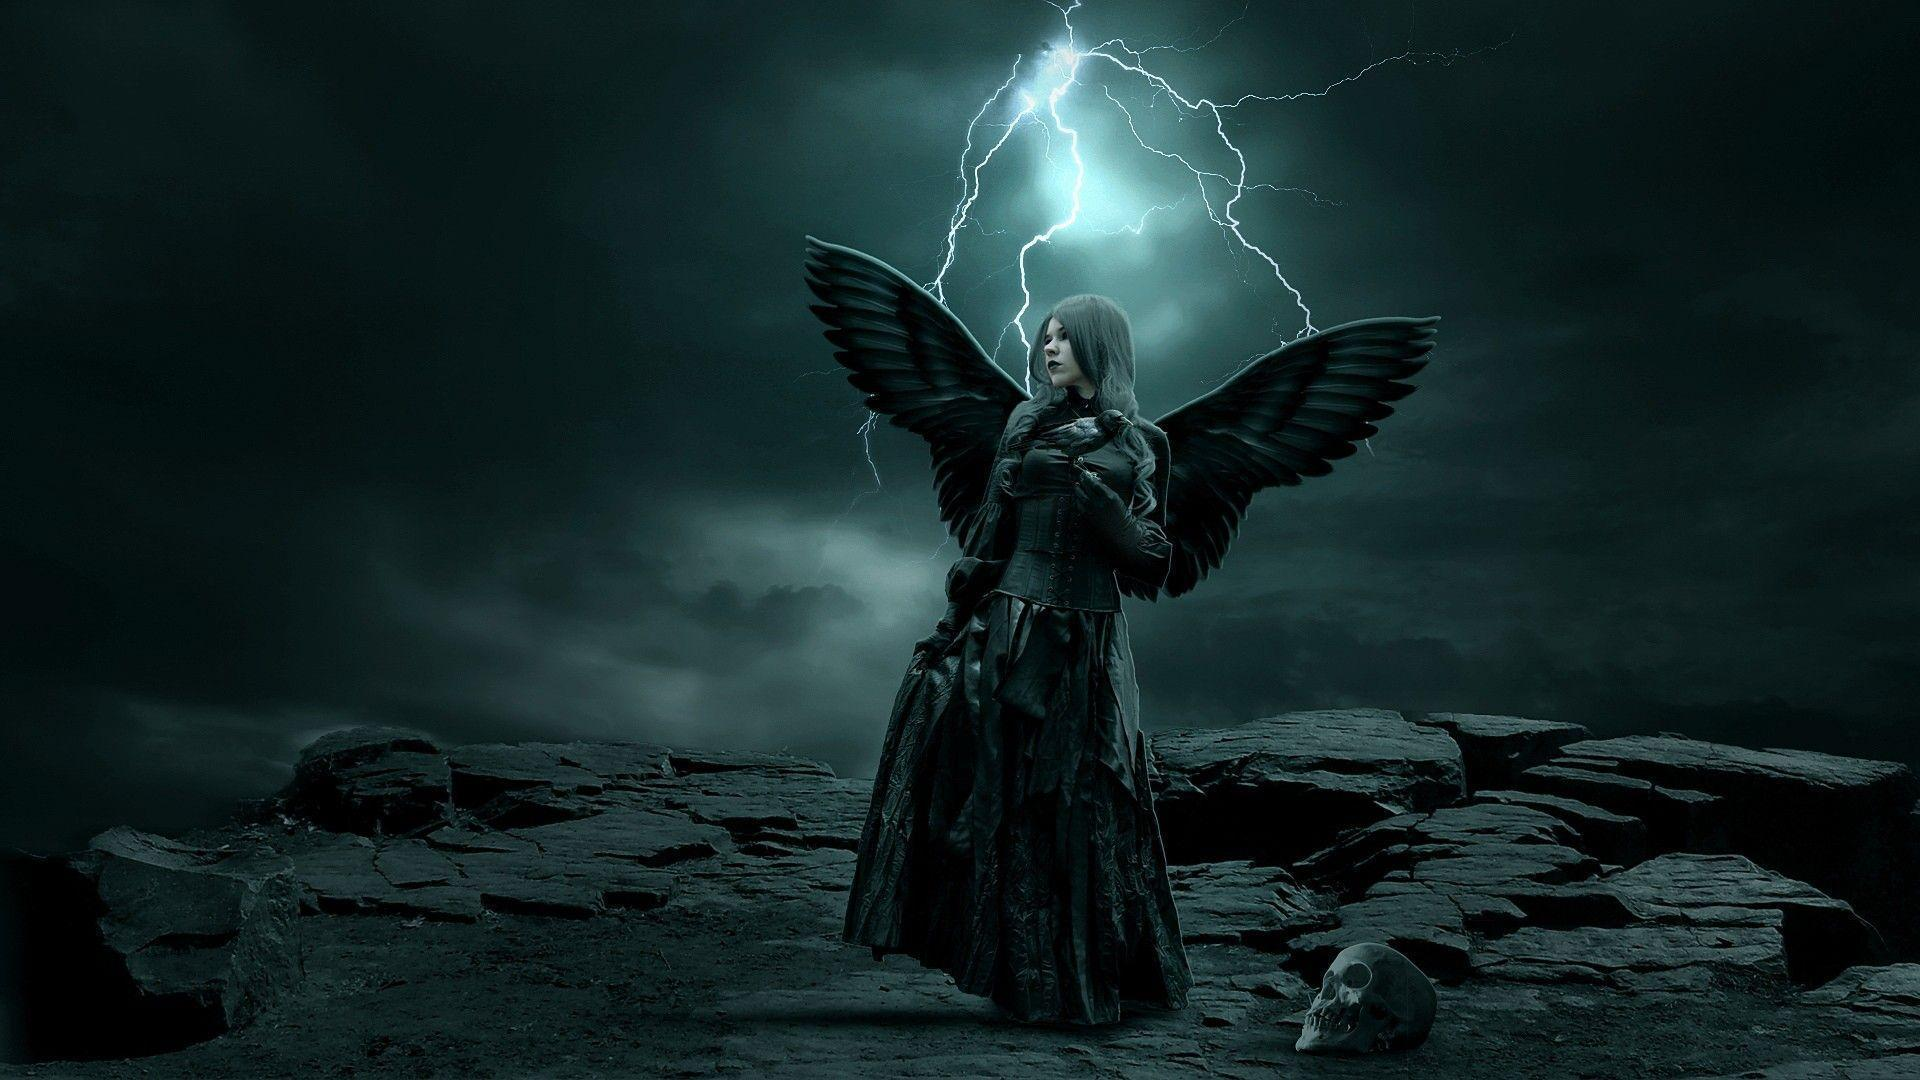 victorian angel desktop wallpaper - photo #34